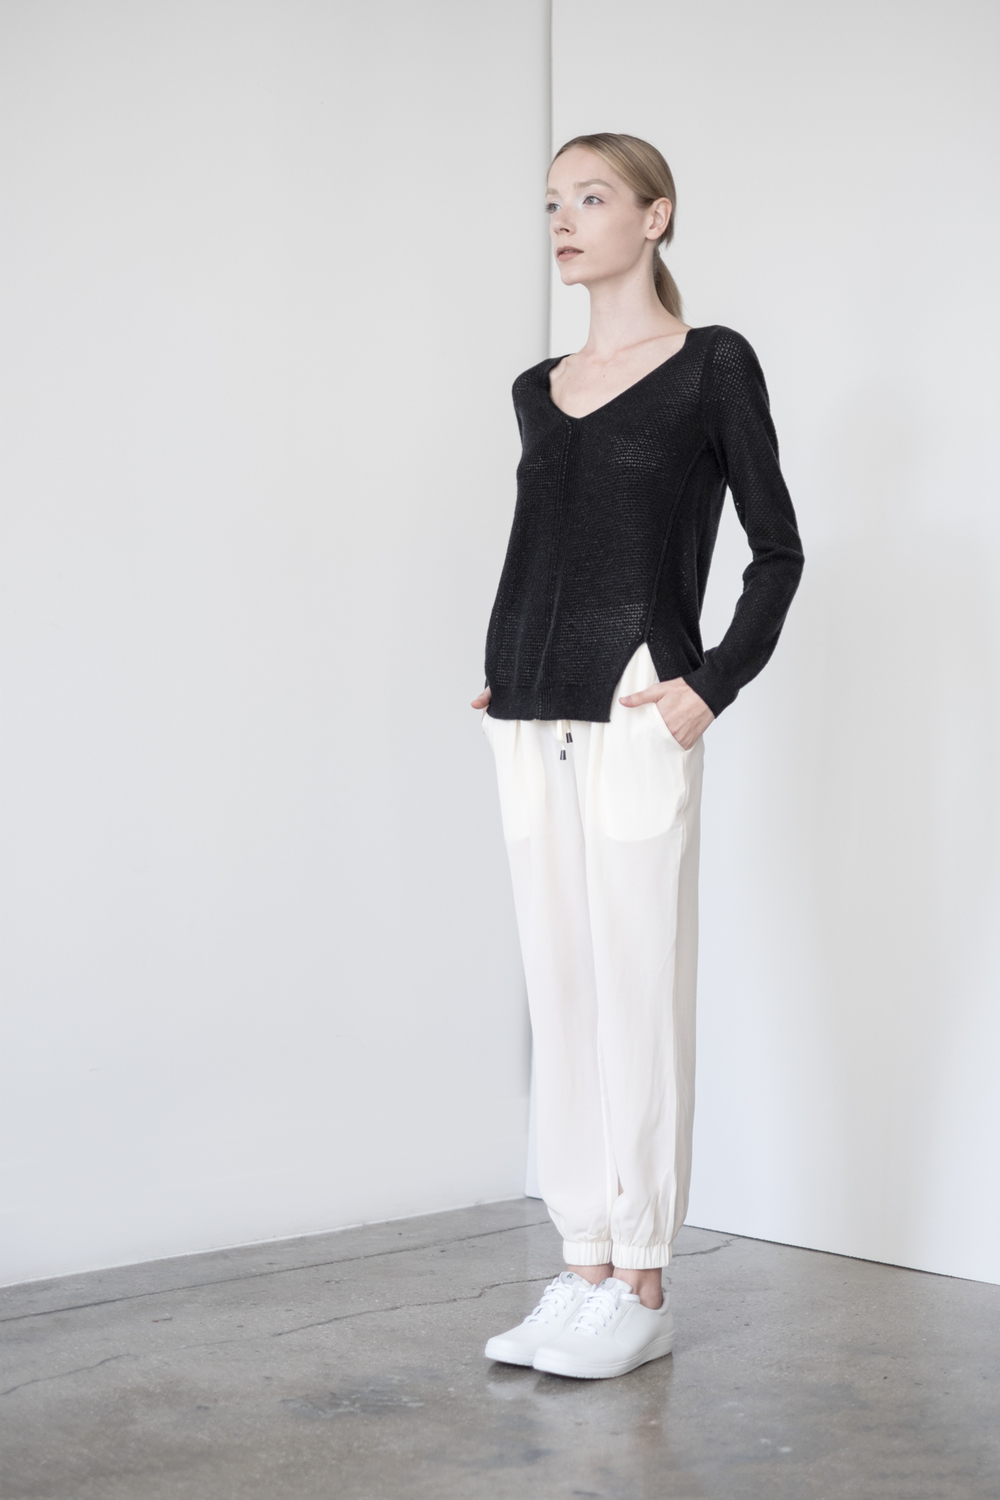 LOOK 39   TOP:   2276  / Noir   -     Audrey open mix lace stitch pullover, in fine gauge cashmere.   BOTTOM:   2203  / Bone -    Jogger pants in 100% Silk.